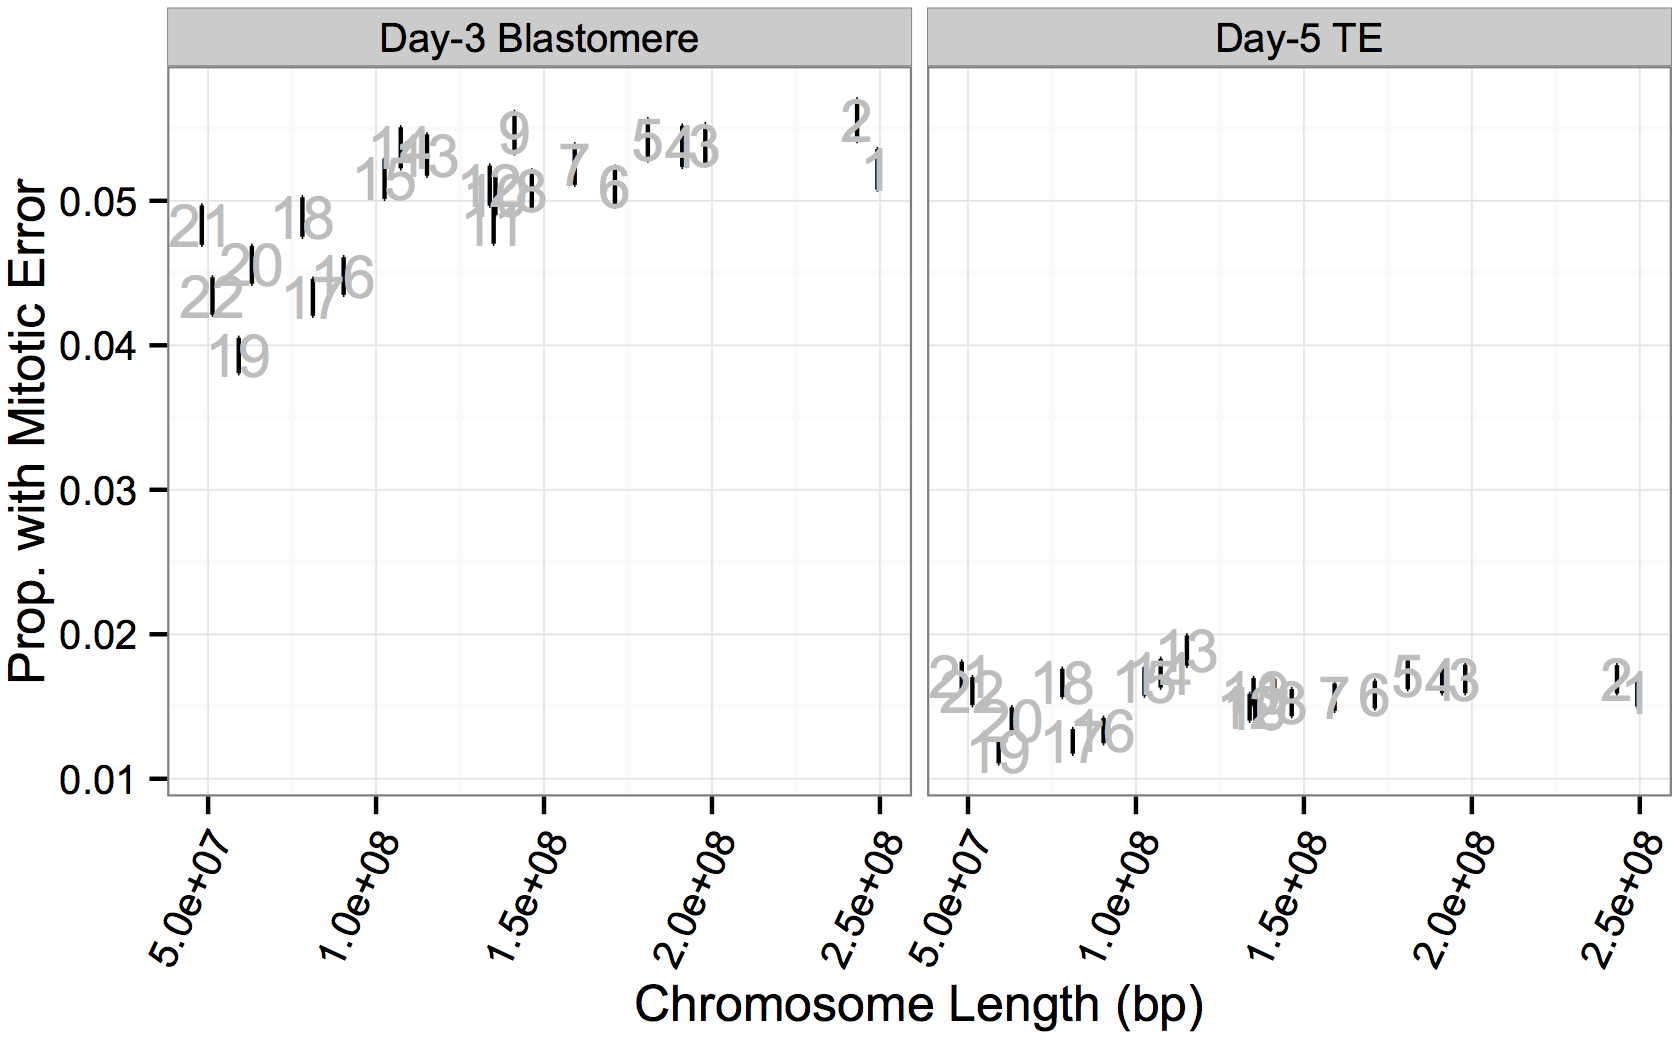 Chromosome-specific rates of putative mitotic errors are positively correlated with chromosome length in day-3 blastomeres.